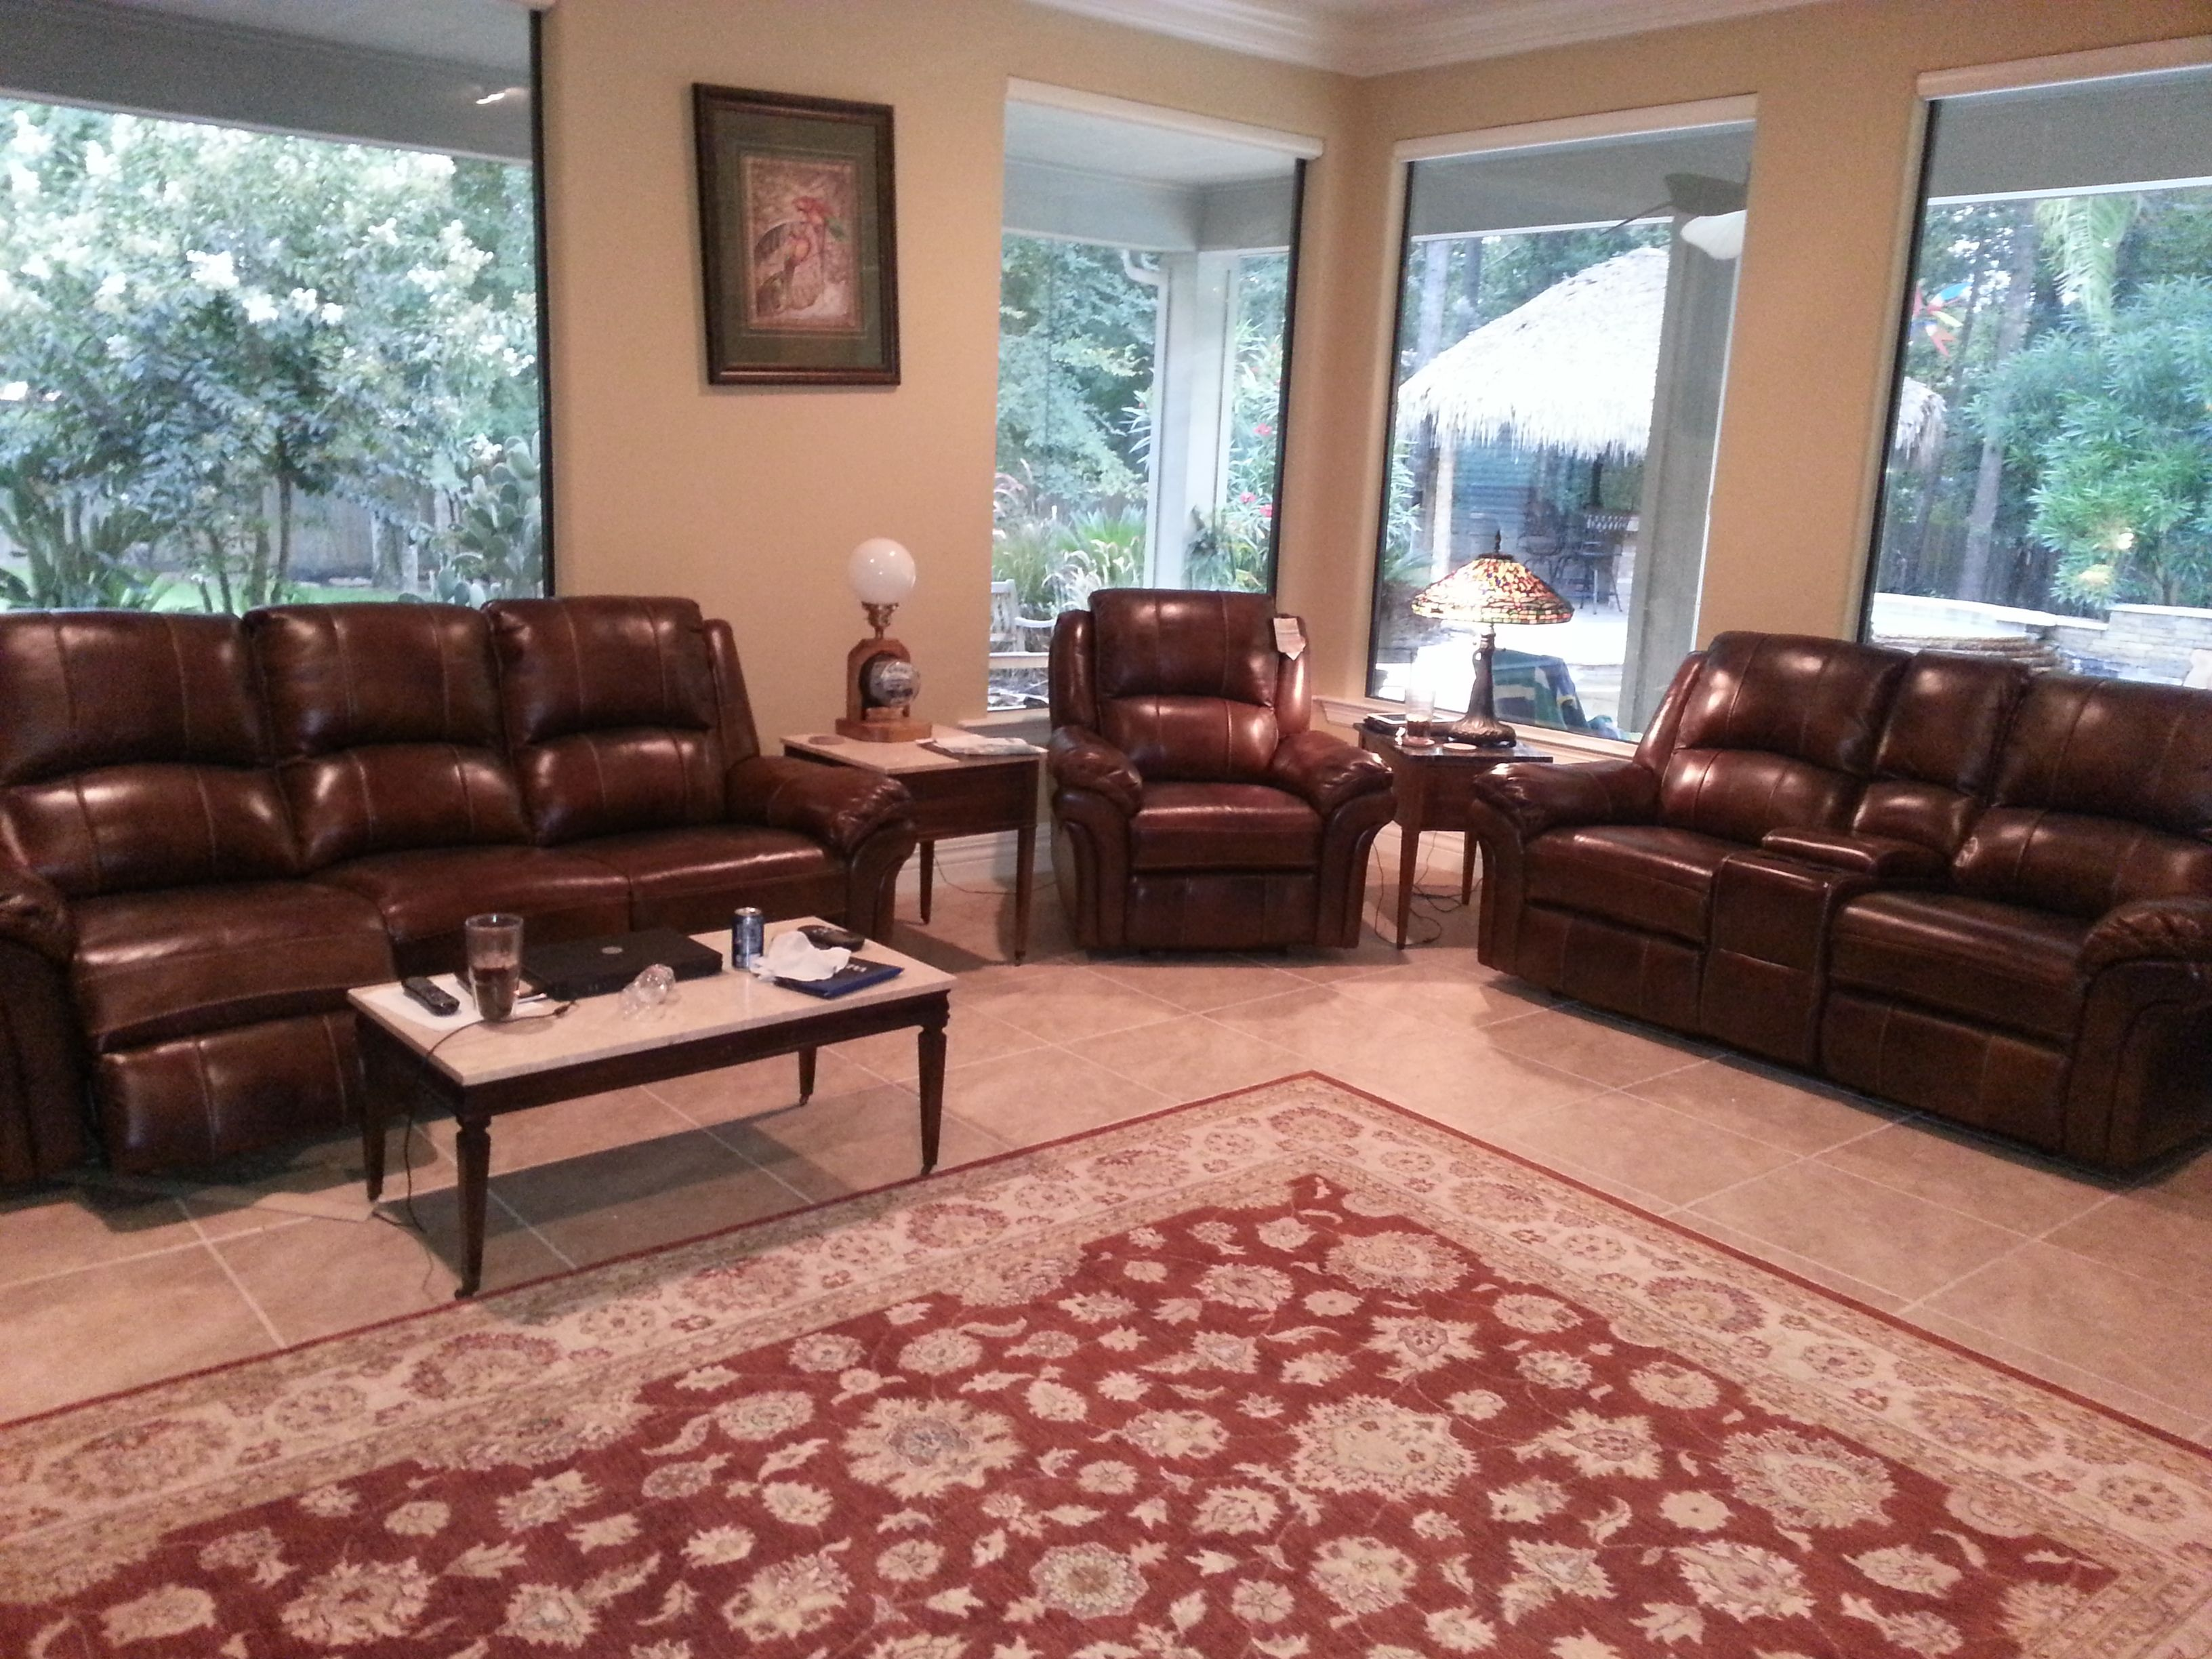 Attirant A Magnolia, TX Family Fell In Love With This Flexsteel Dandridge Living Room  Set From Gallery Furniture. #leather Houston TX | Gallery Furniture |